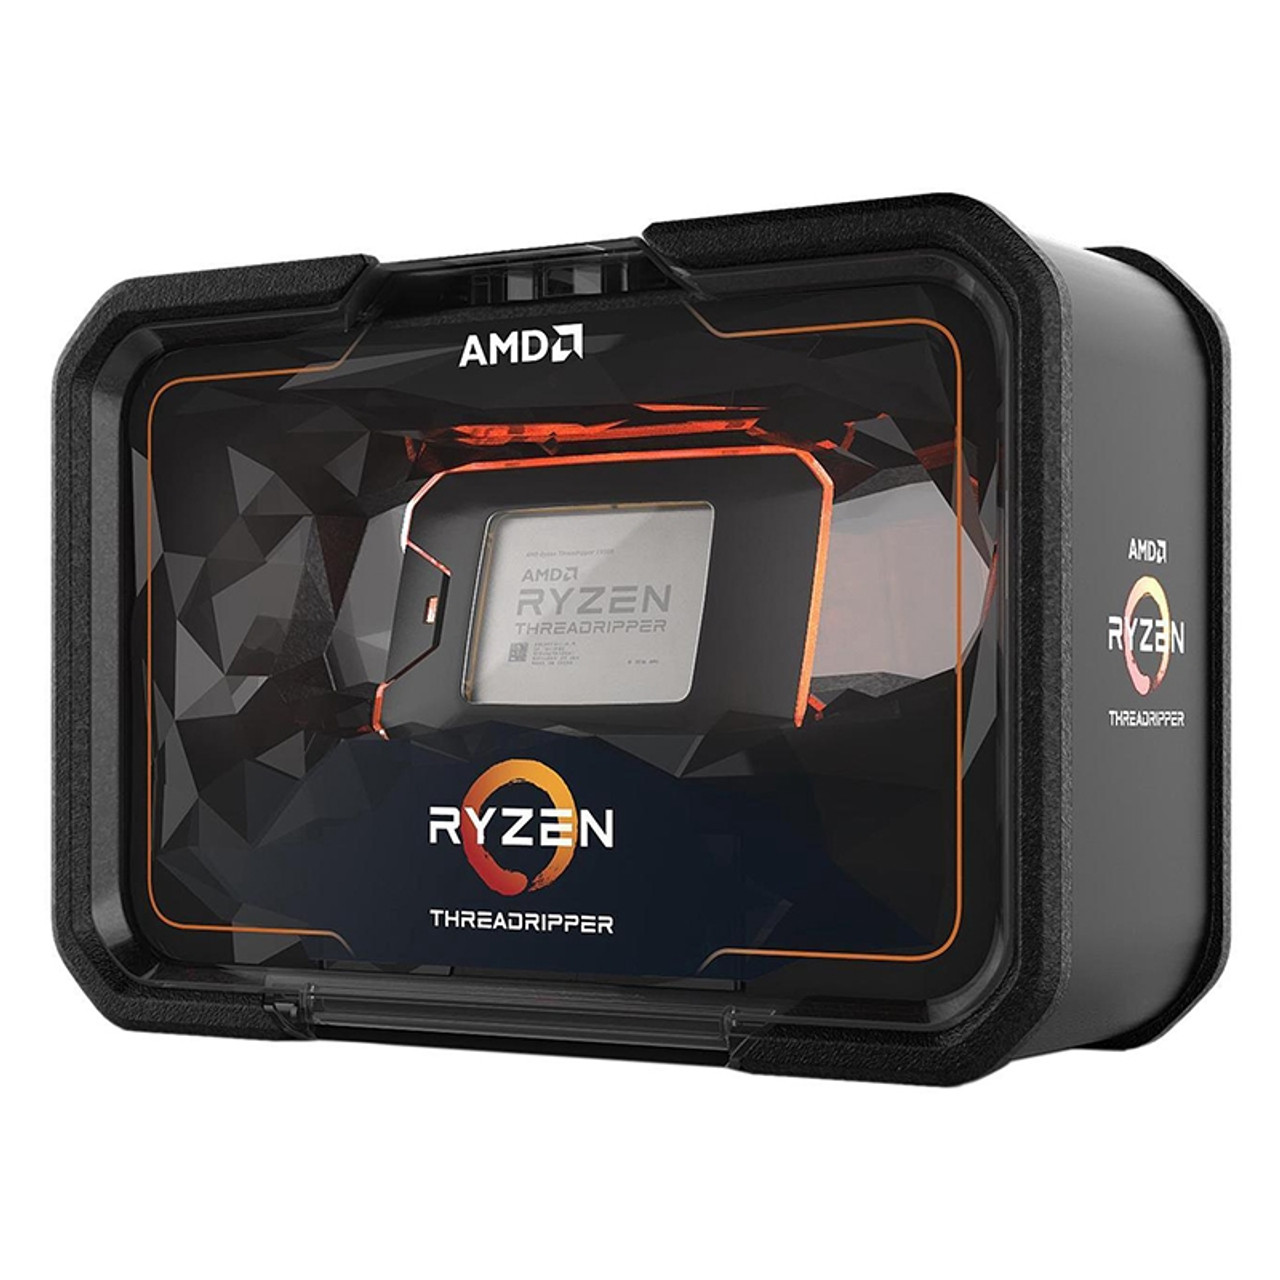 Product image for AMD Ryzen Threadripper 2990WX Processor | CX Computer Superstore